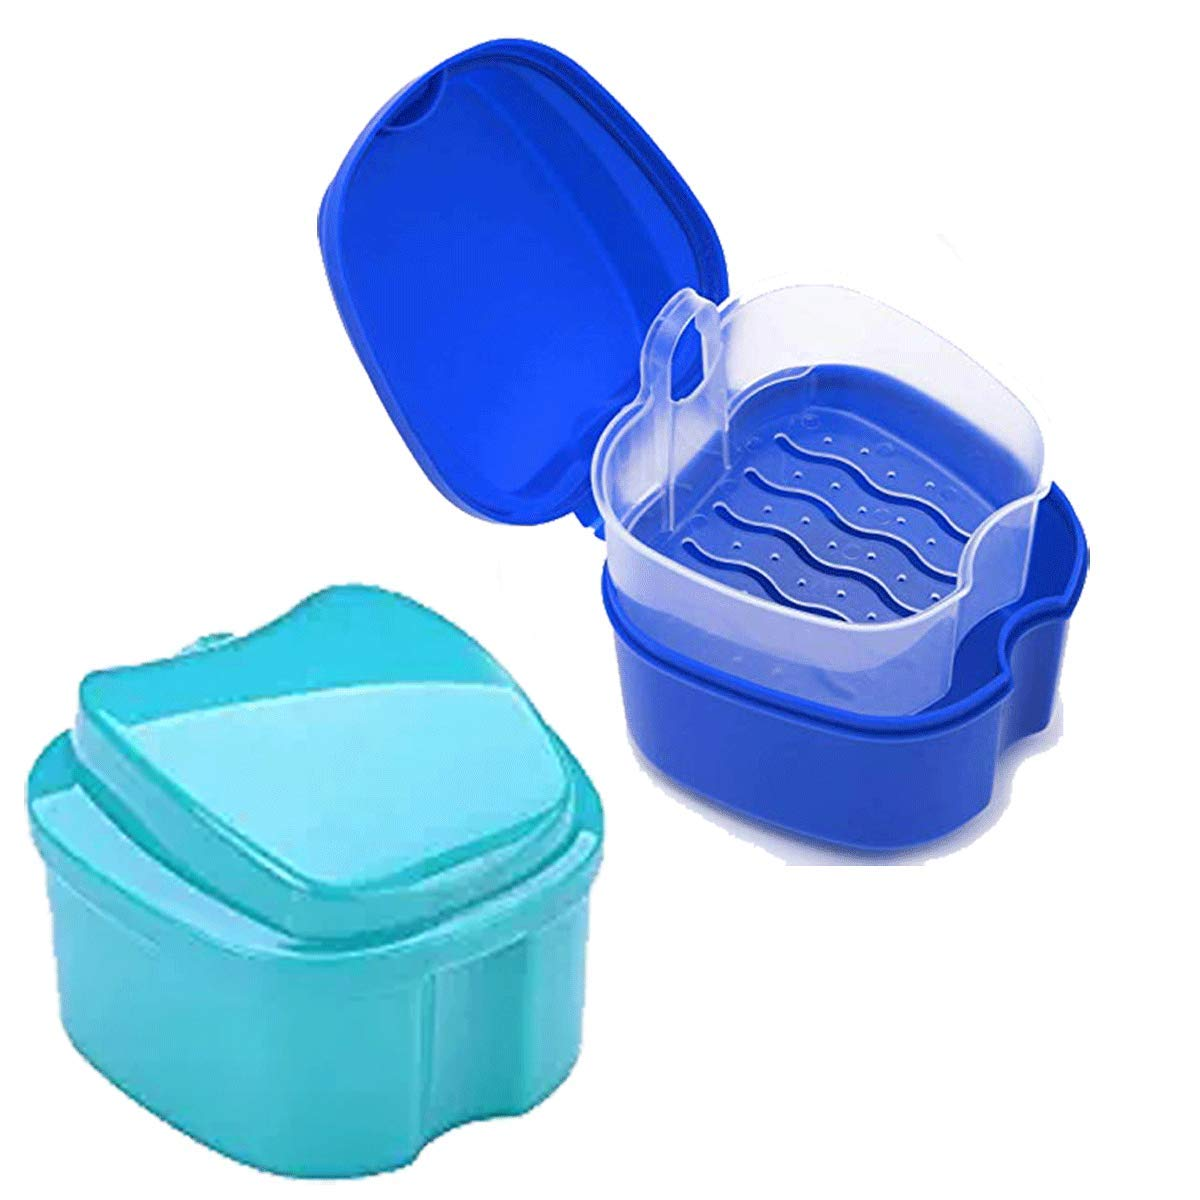 2PCS Teeth Guard Box Denture Storage Case Mouthguard False Teeth Holder